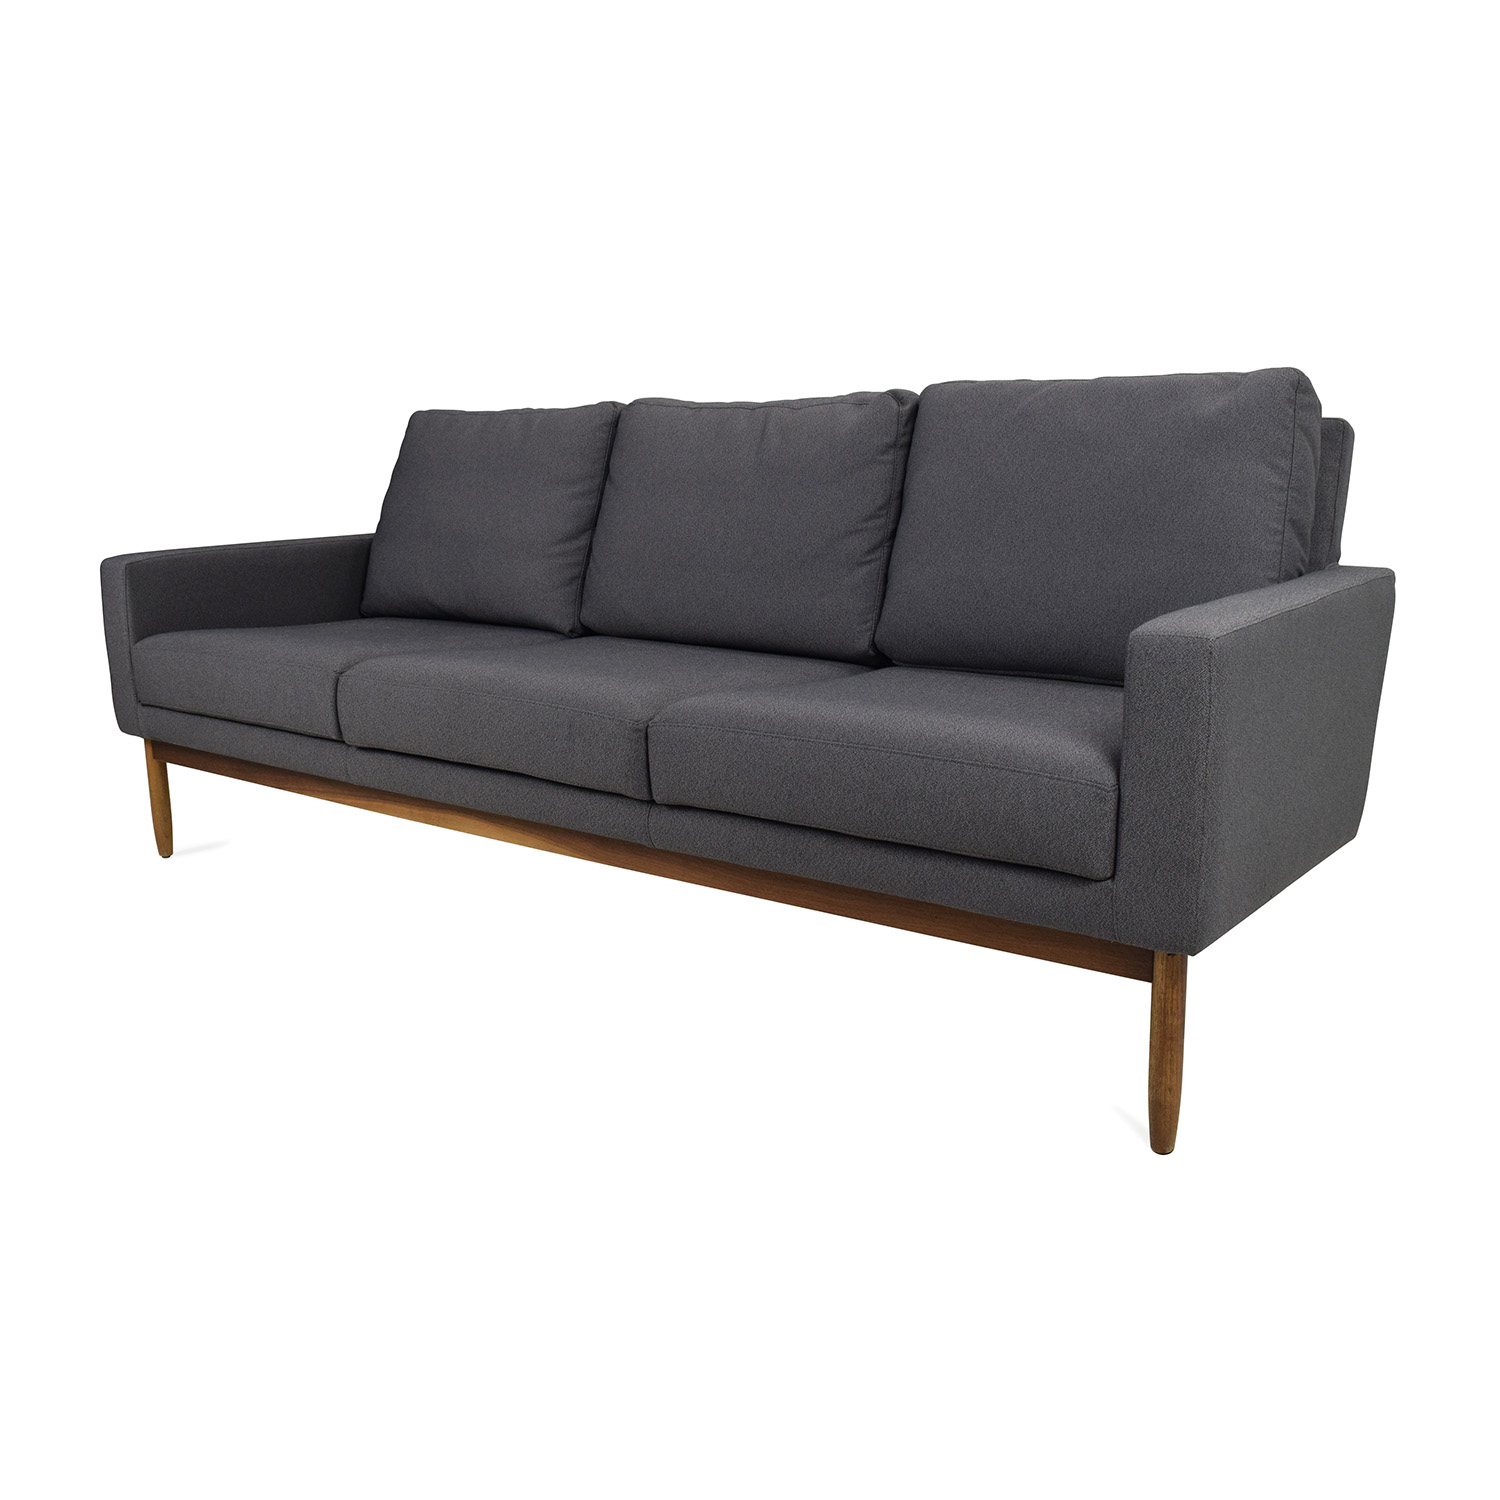 69% OFF   Design Within Reach Design Within Reach Raleigh Sofa / Sofas